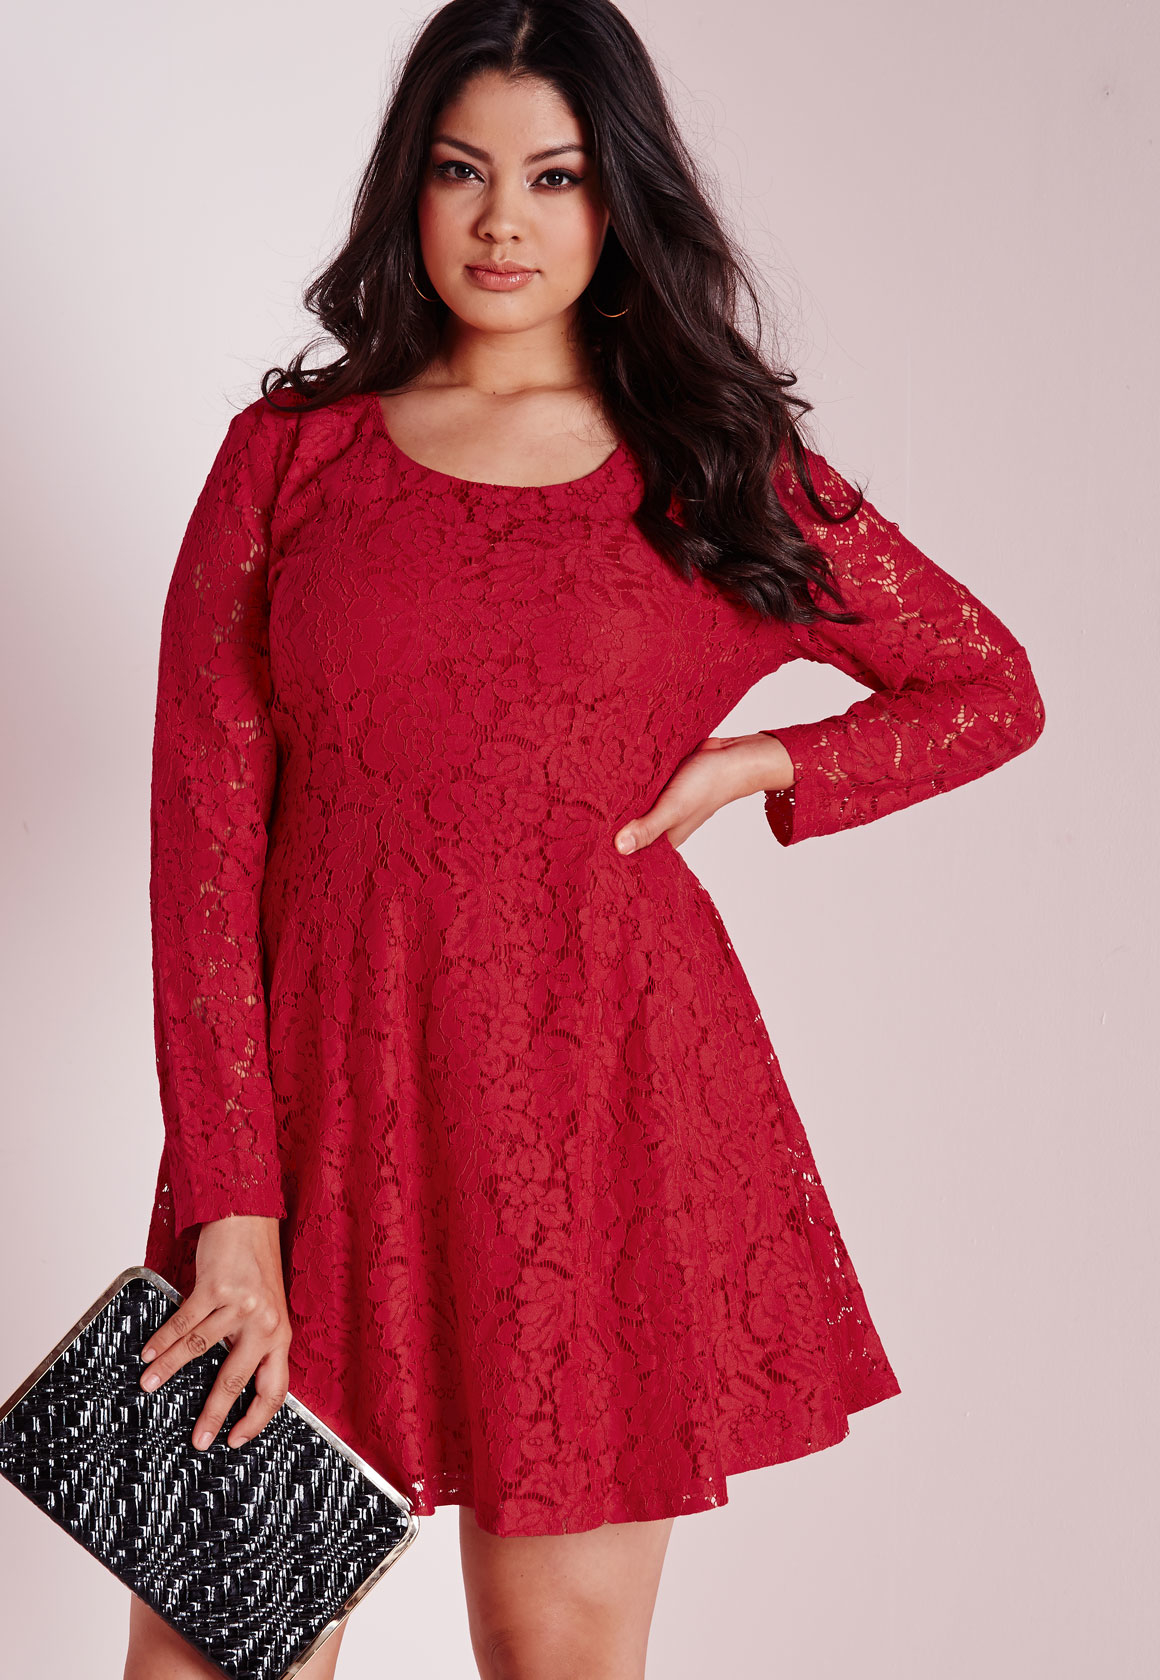 Lyst - Missguided Plus Size Lace Skater Dress Red in Red